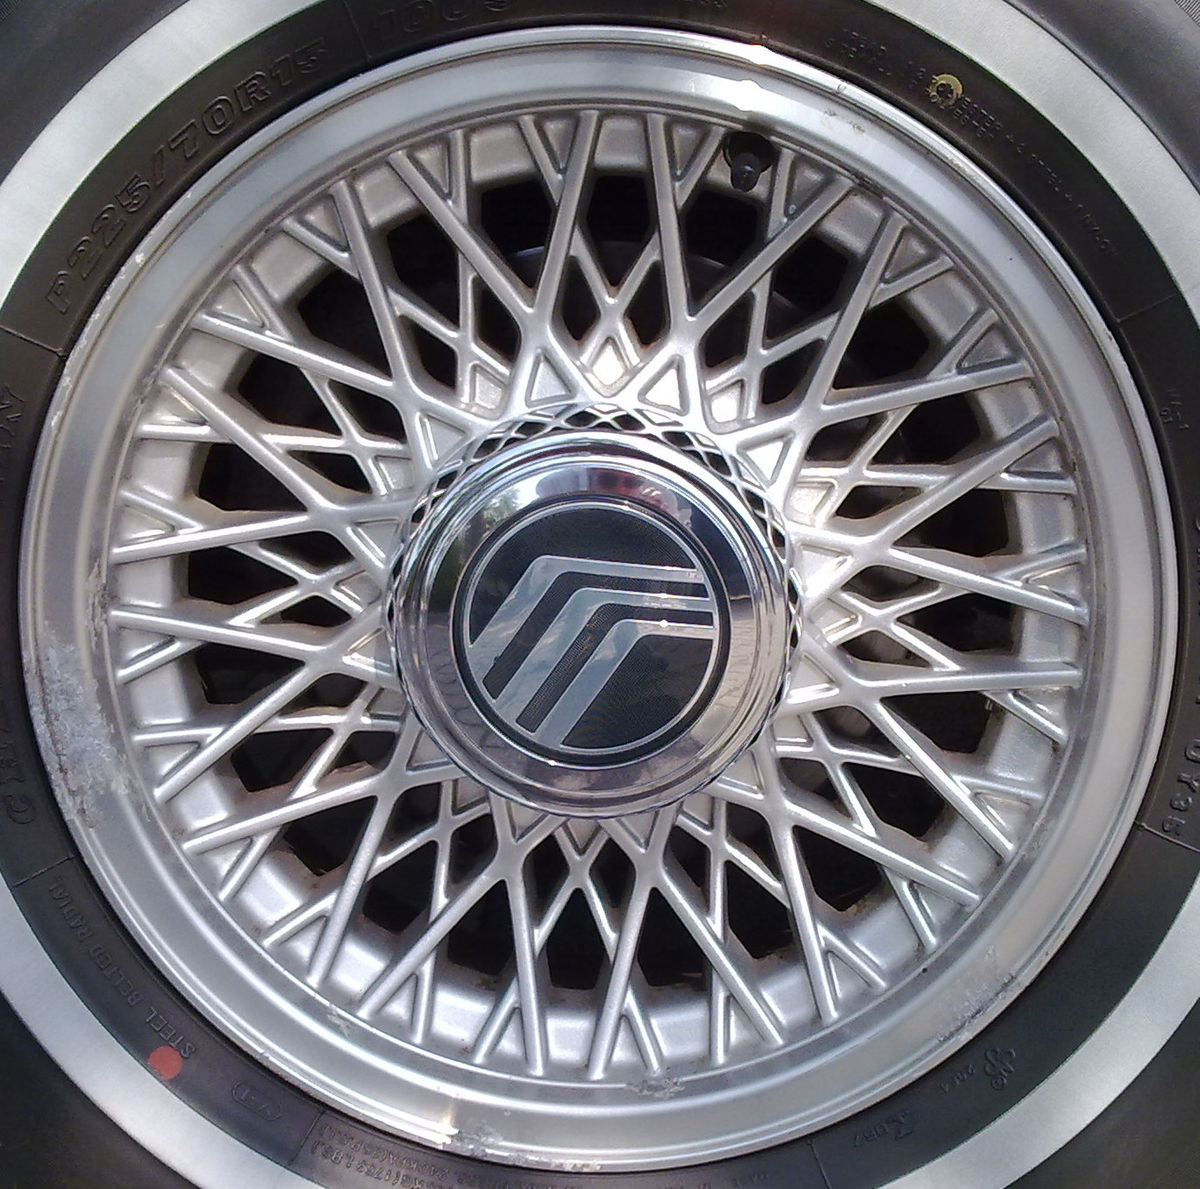 alloy wheel aluminum types cast automobile wheels mercury mag metal mags classic marquis grand passenger motorcycle vehicle caps cap center